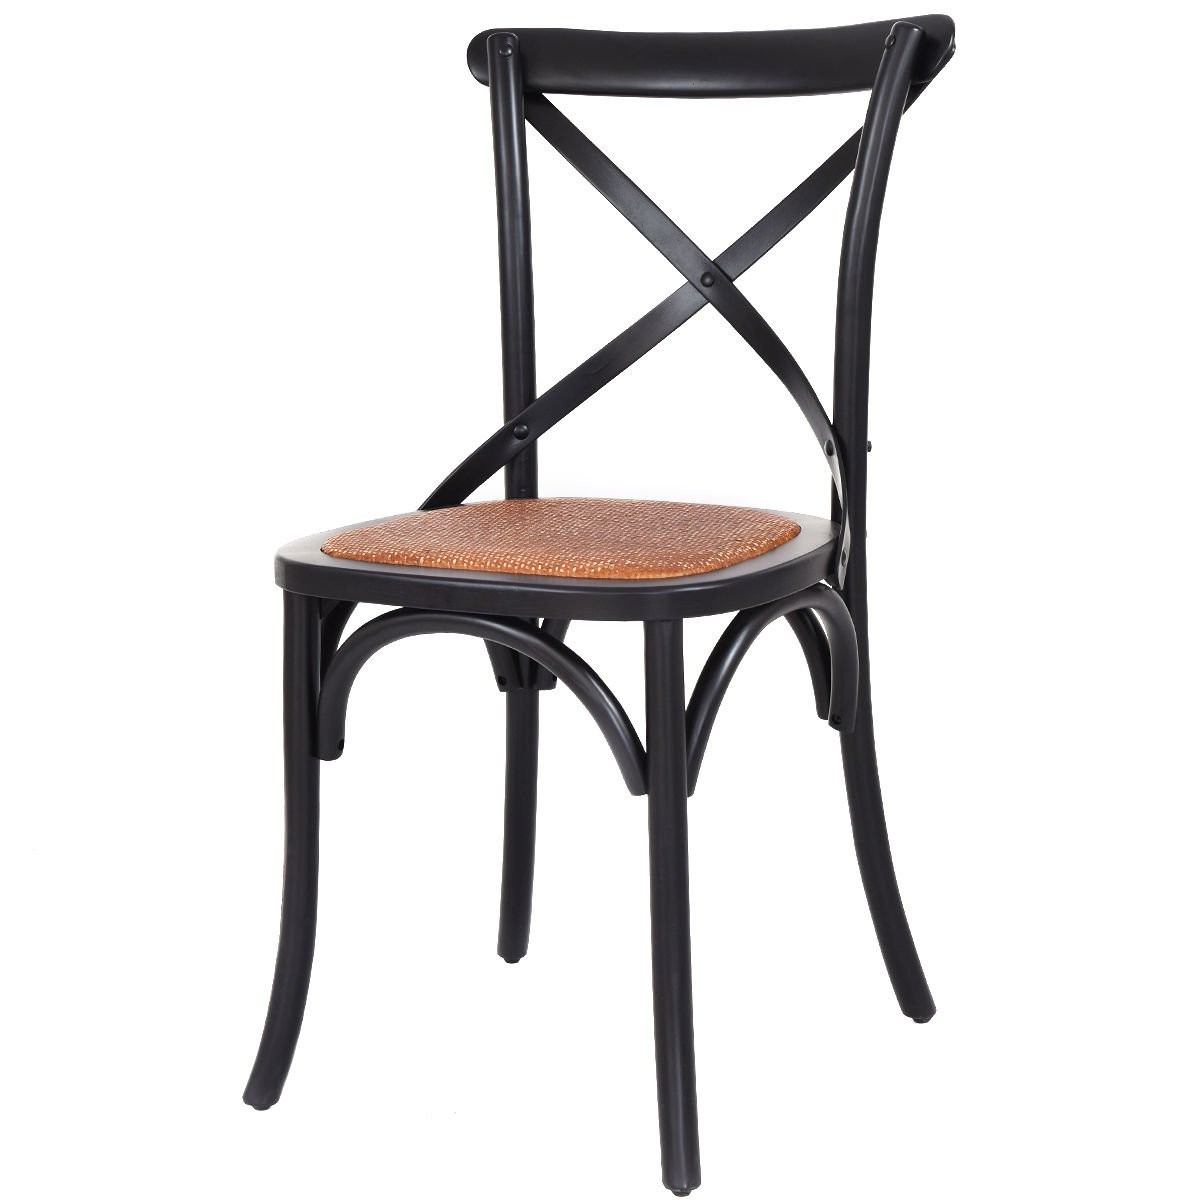 Amazon.com - COSTWAY Cross Back Antique Style Dining Chair Birch Frame with  Rattan Seat (Black) - Chairs - Amazon.com - COSTWAY Cross Back Antique Style Dining Chair Birch